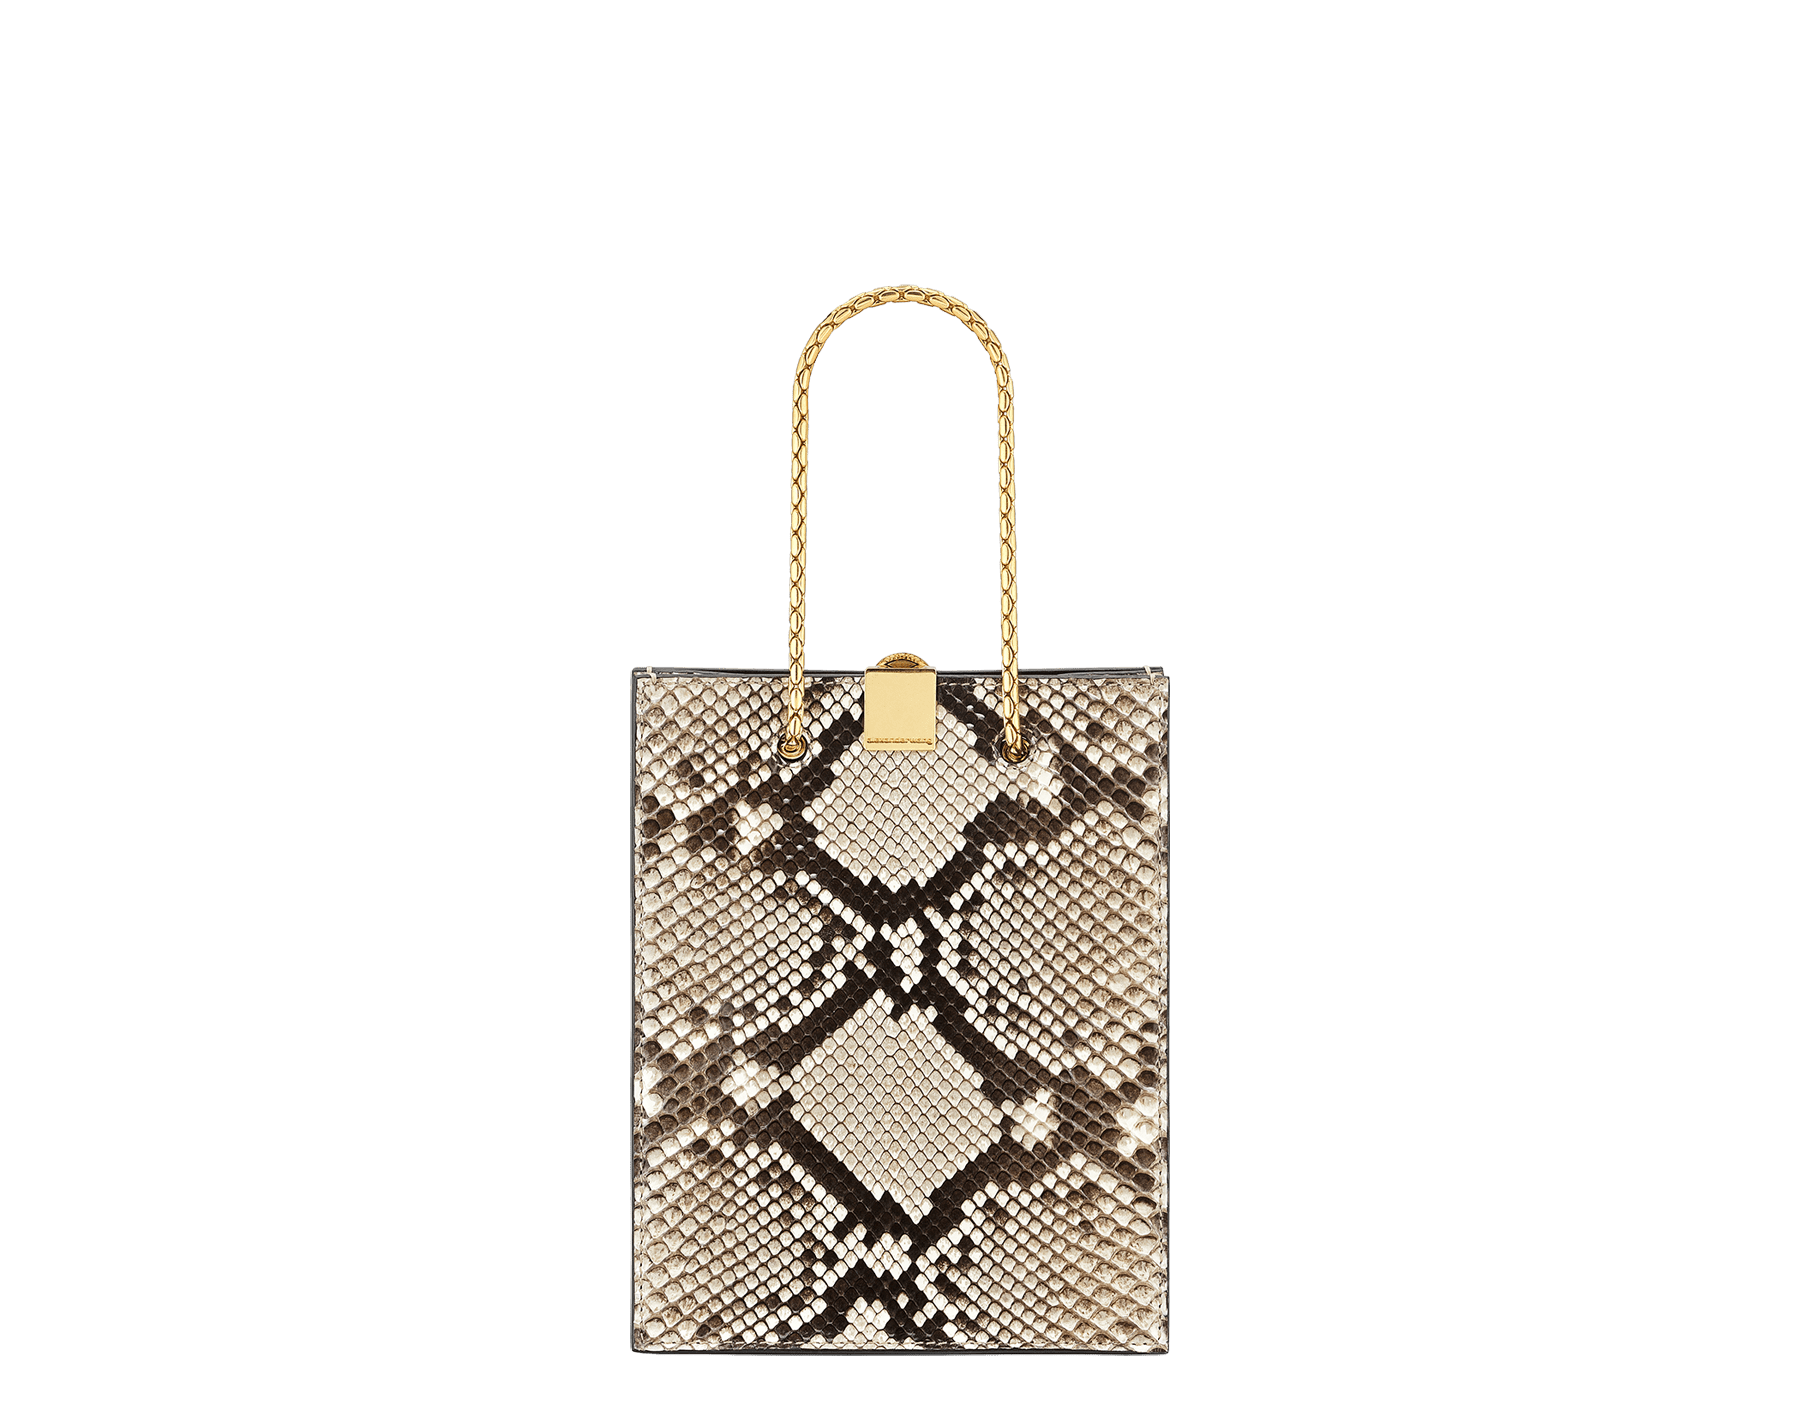 Alexander Wang x Bvlgari mini shopping tote bag in natural python skin and black calf leather. New Serpenti head closure in antique gold plated brass with tempting red enamel eyes. Limited edition. 288732 image 3